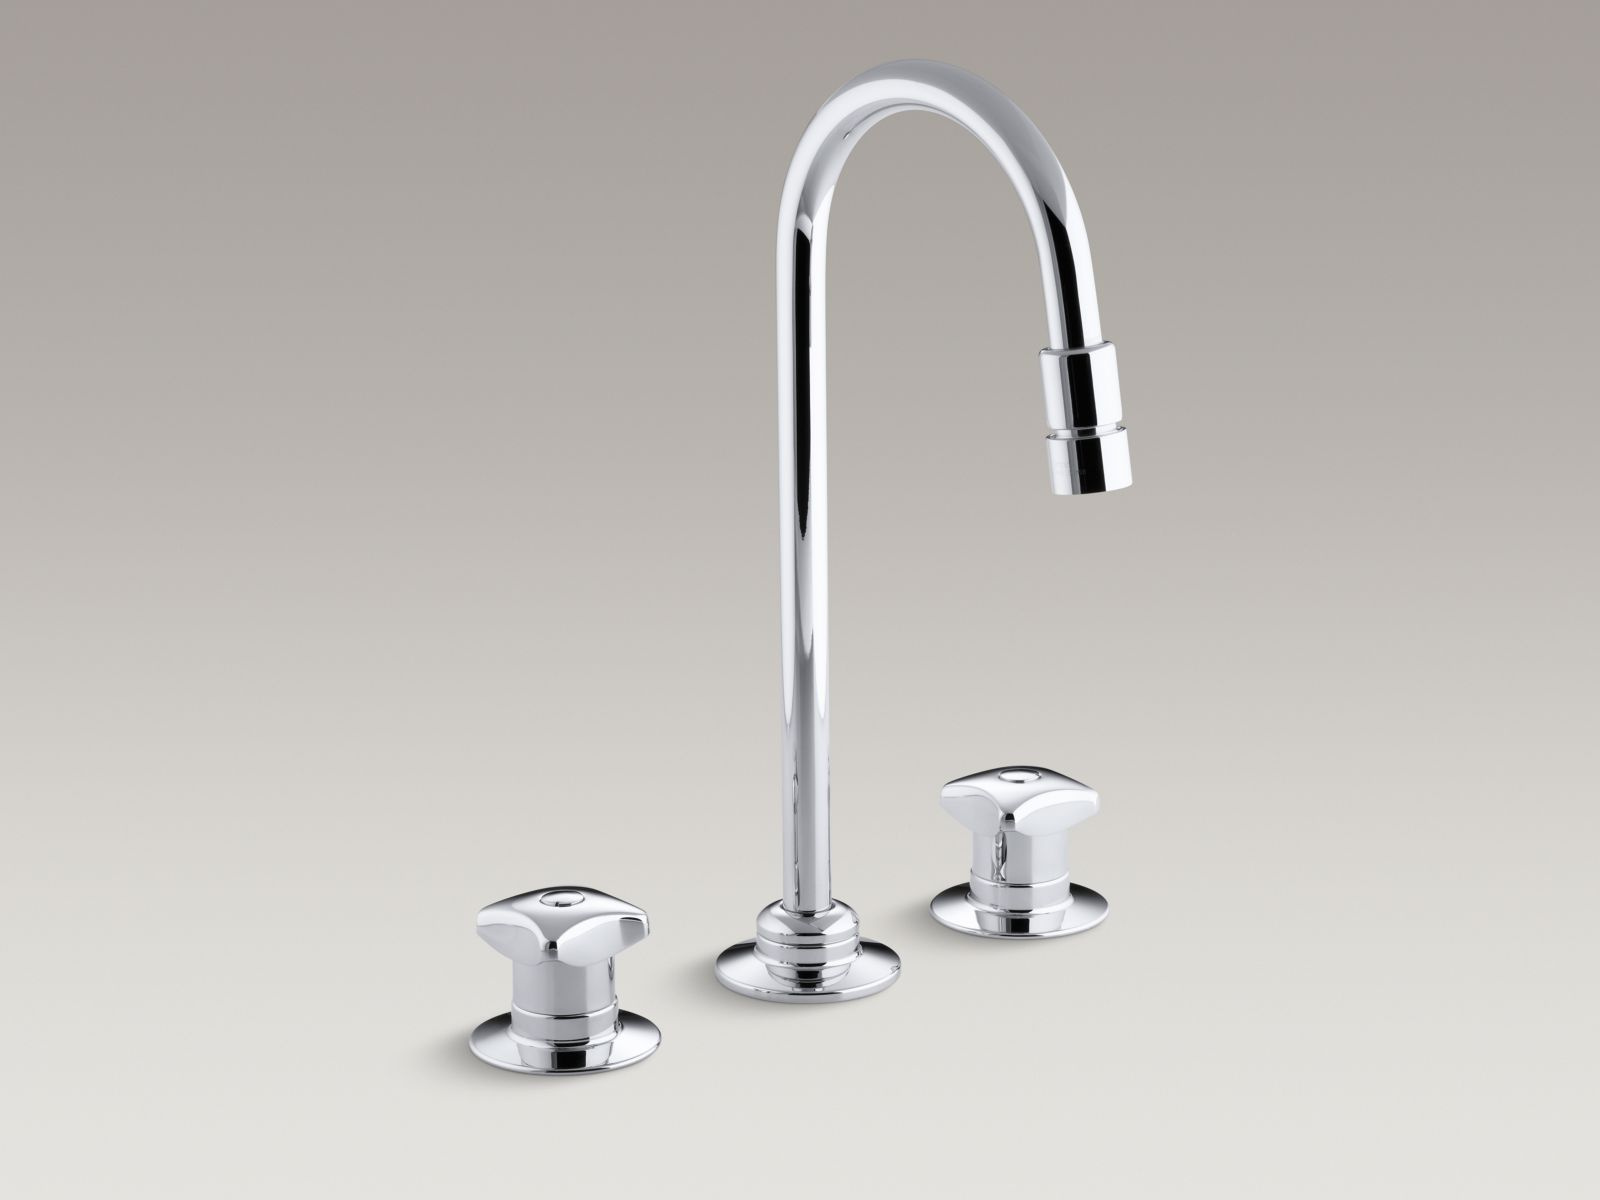 Kohler K-7304-KE-CP Triton Widespread Handle-less Commercial Bathroom Faucet with Flexible Connections and Vandal-resistant Gooseneck Spout Polished Chrome